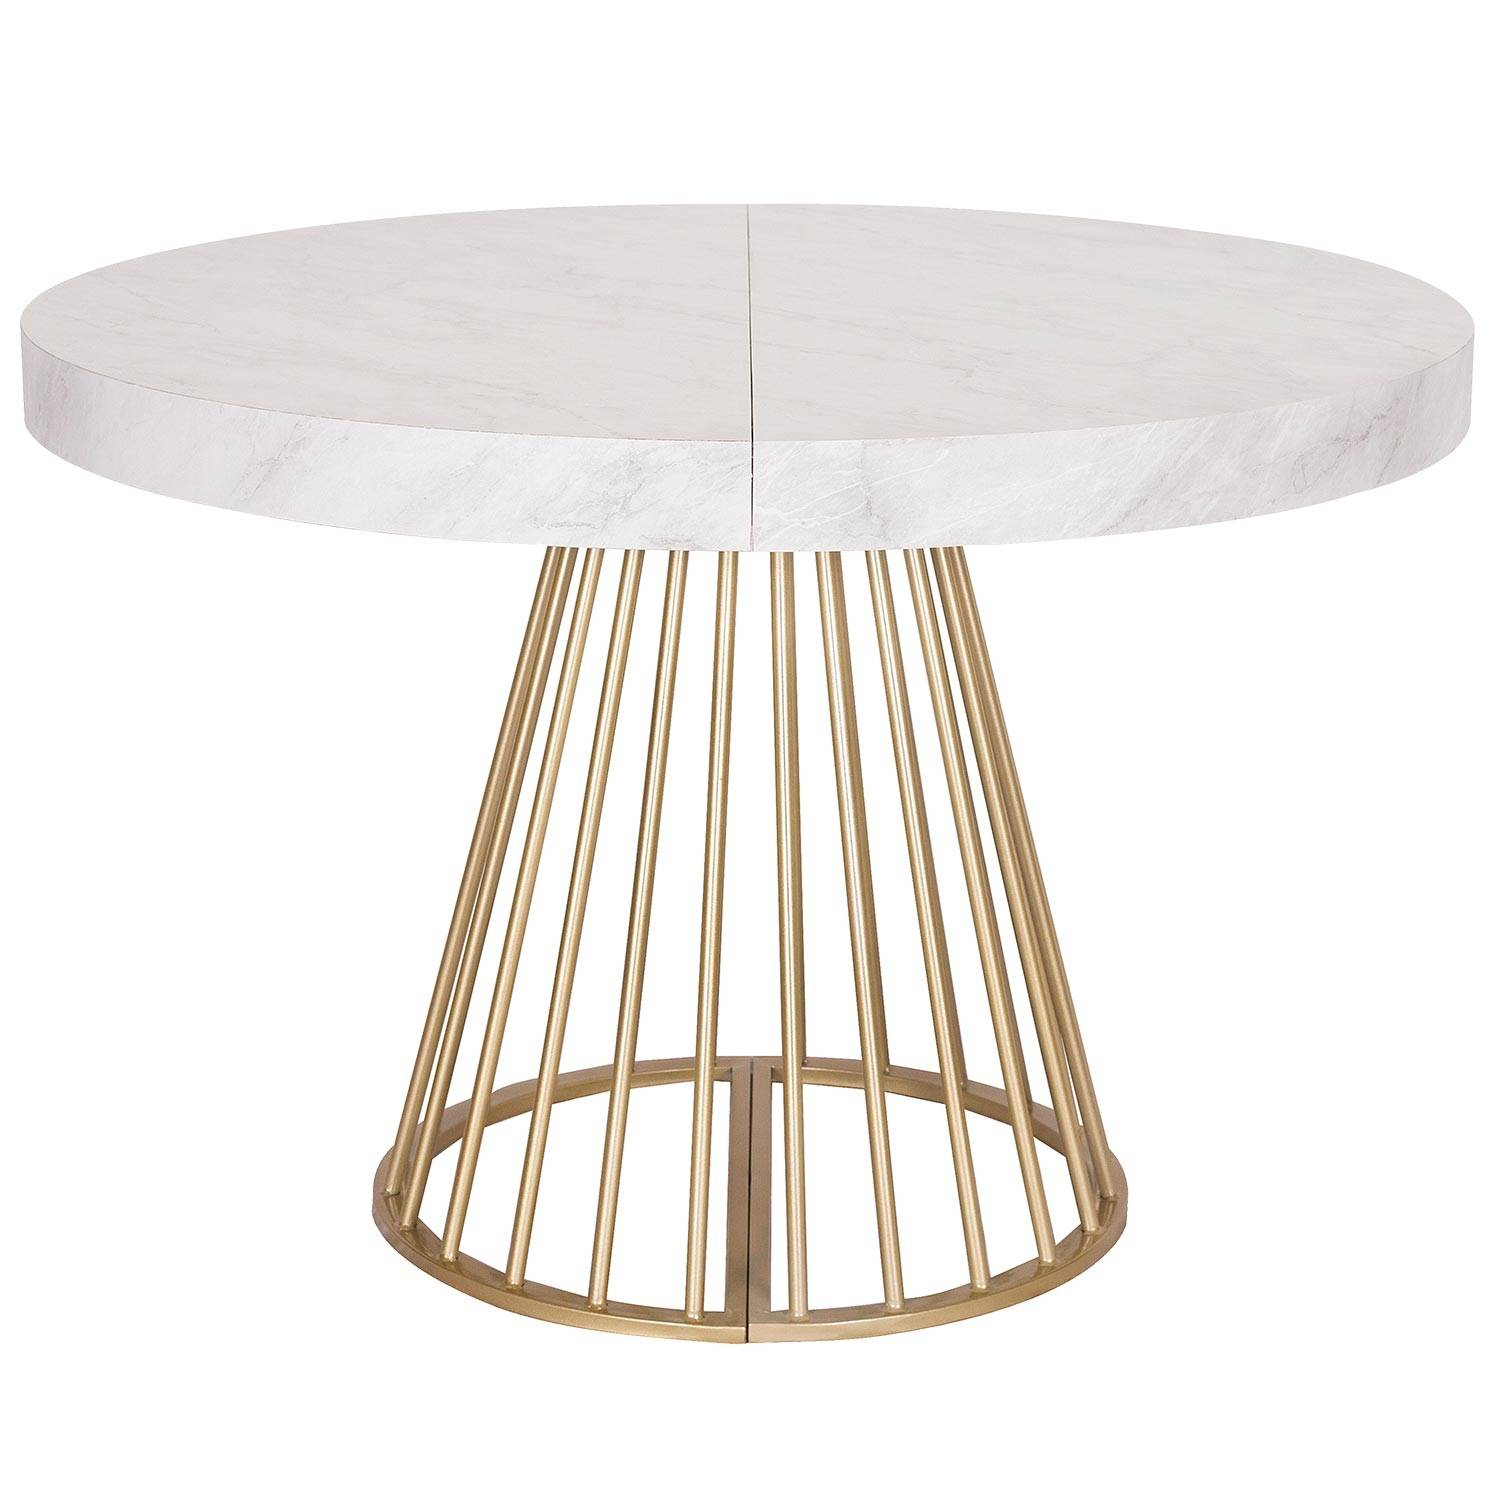 Table ronde extensible effet marbre pieds or